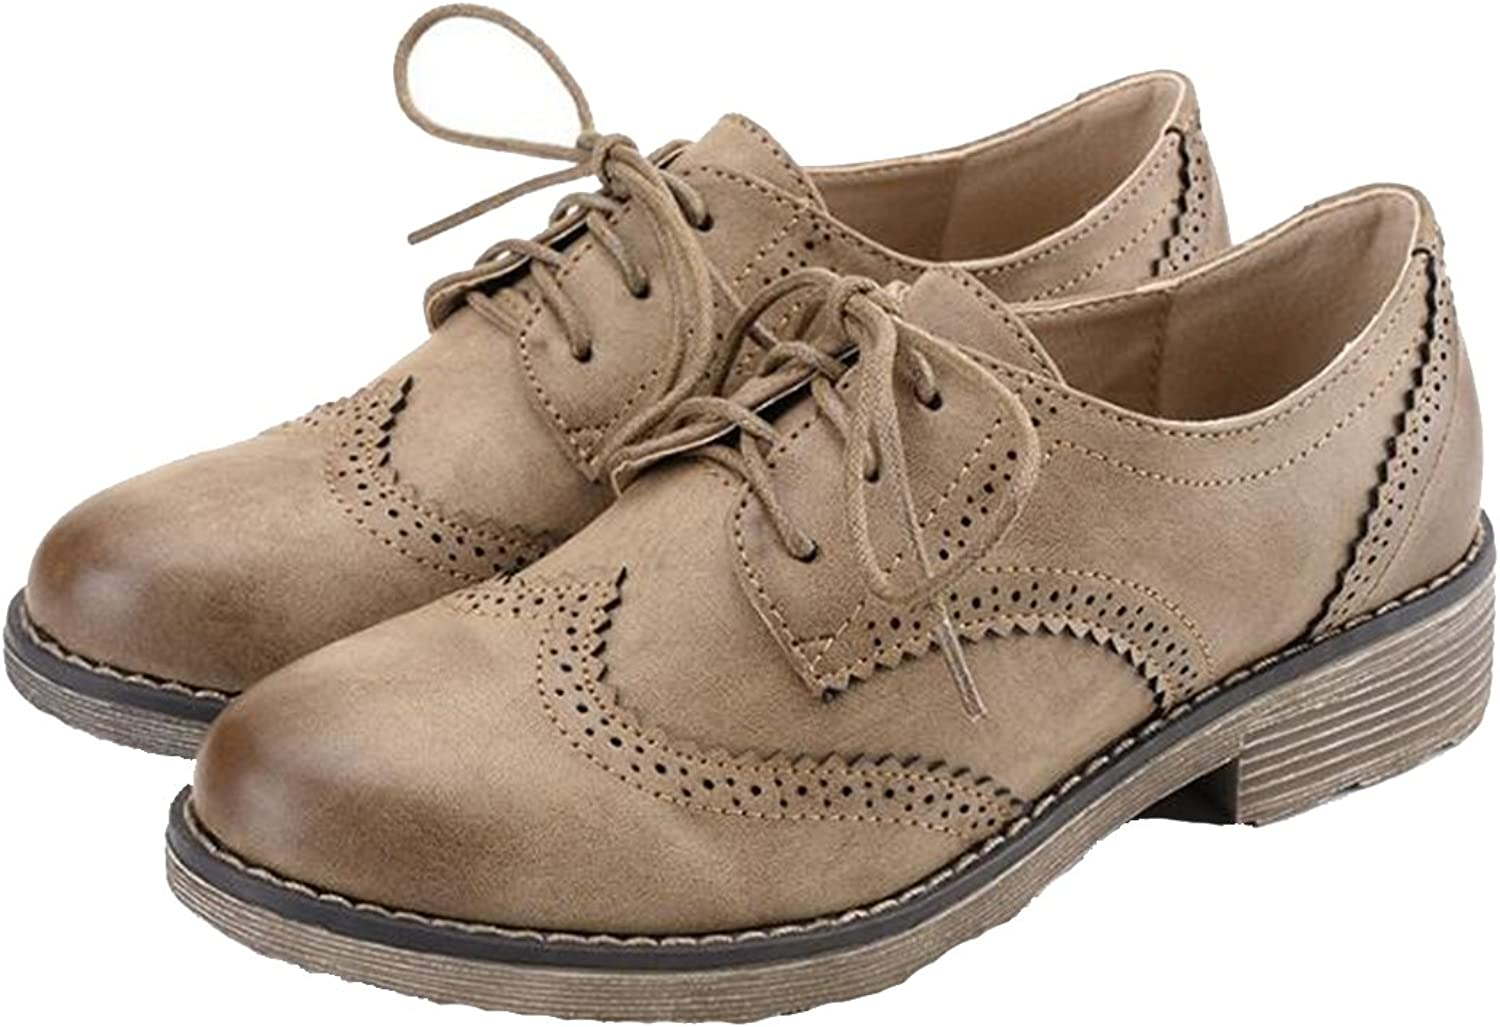 COVOYYAR Women's Vintage Lace Up Hollow Out Round Toe Oxford Solid Flat shoes Brogues